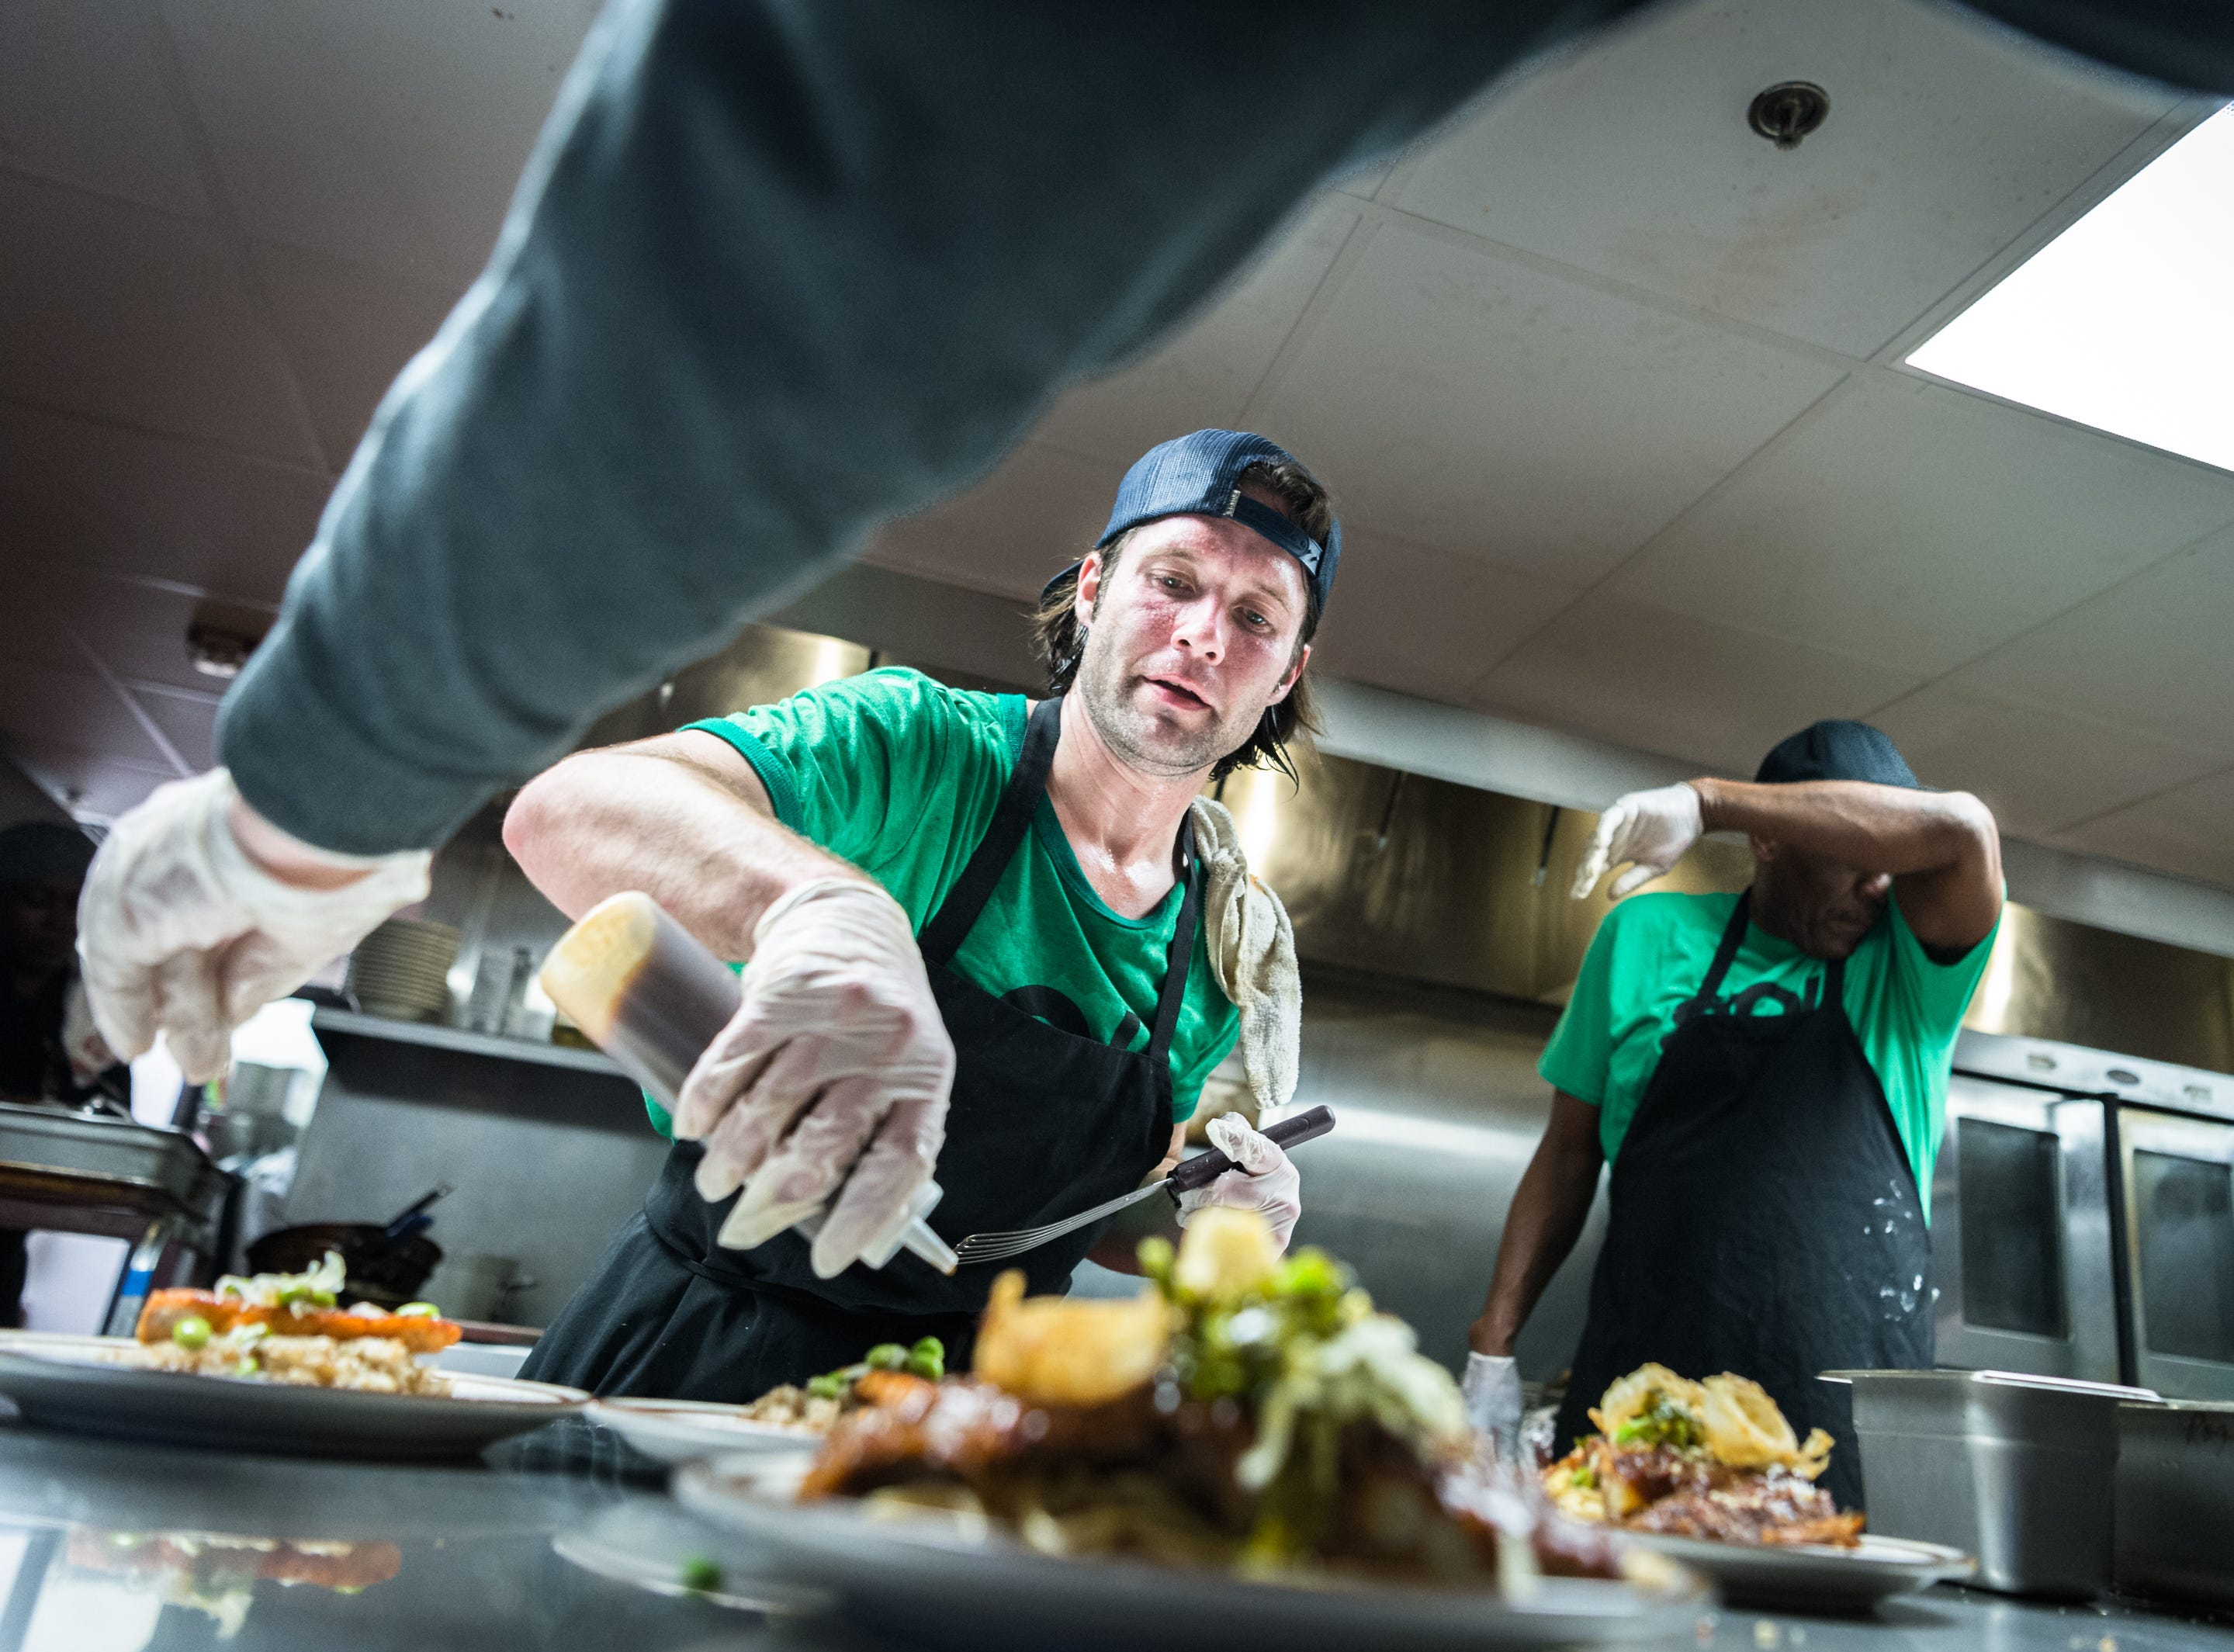 Daniel Burroughs, a student in Green Opportunities' Kitchen Ready program plates food during their showcase dinner at the Southside Kitchen in Asheville Thursday, February 22, 2018.